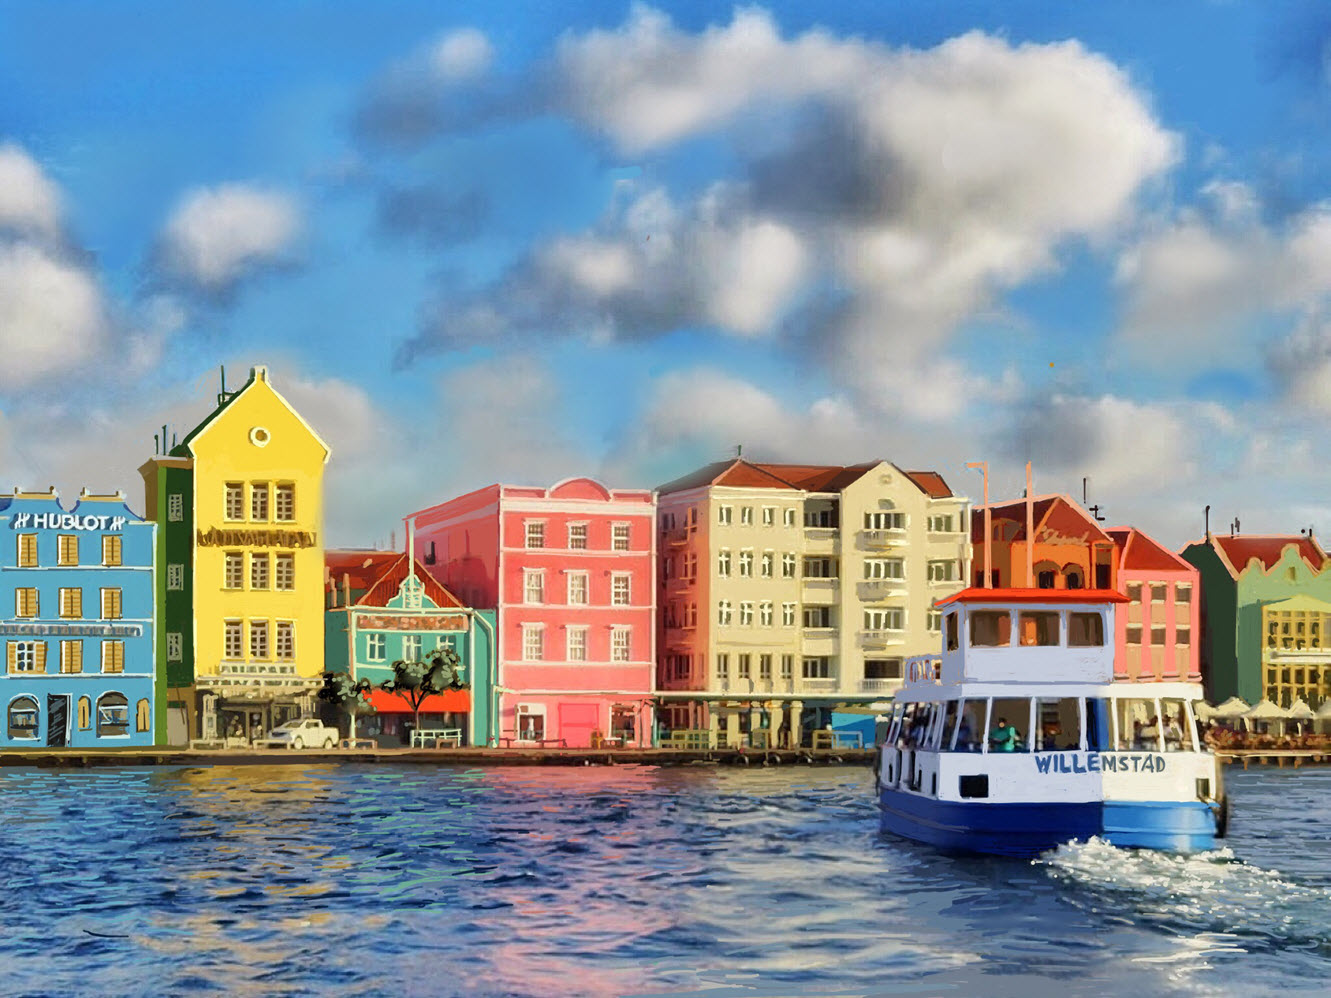 Willemstad Curacao in the So. Caribbean